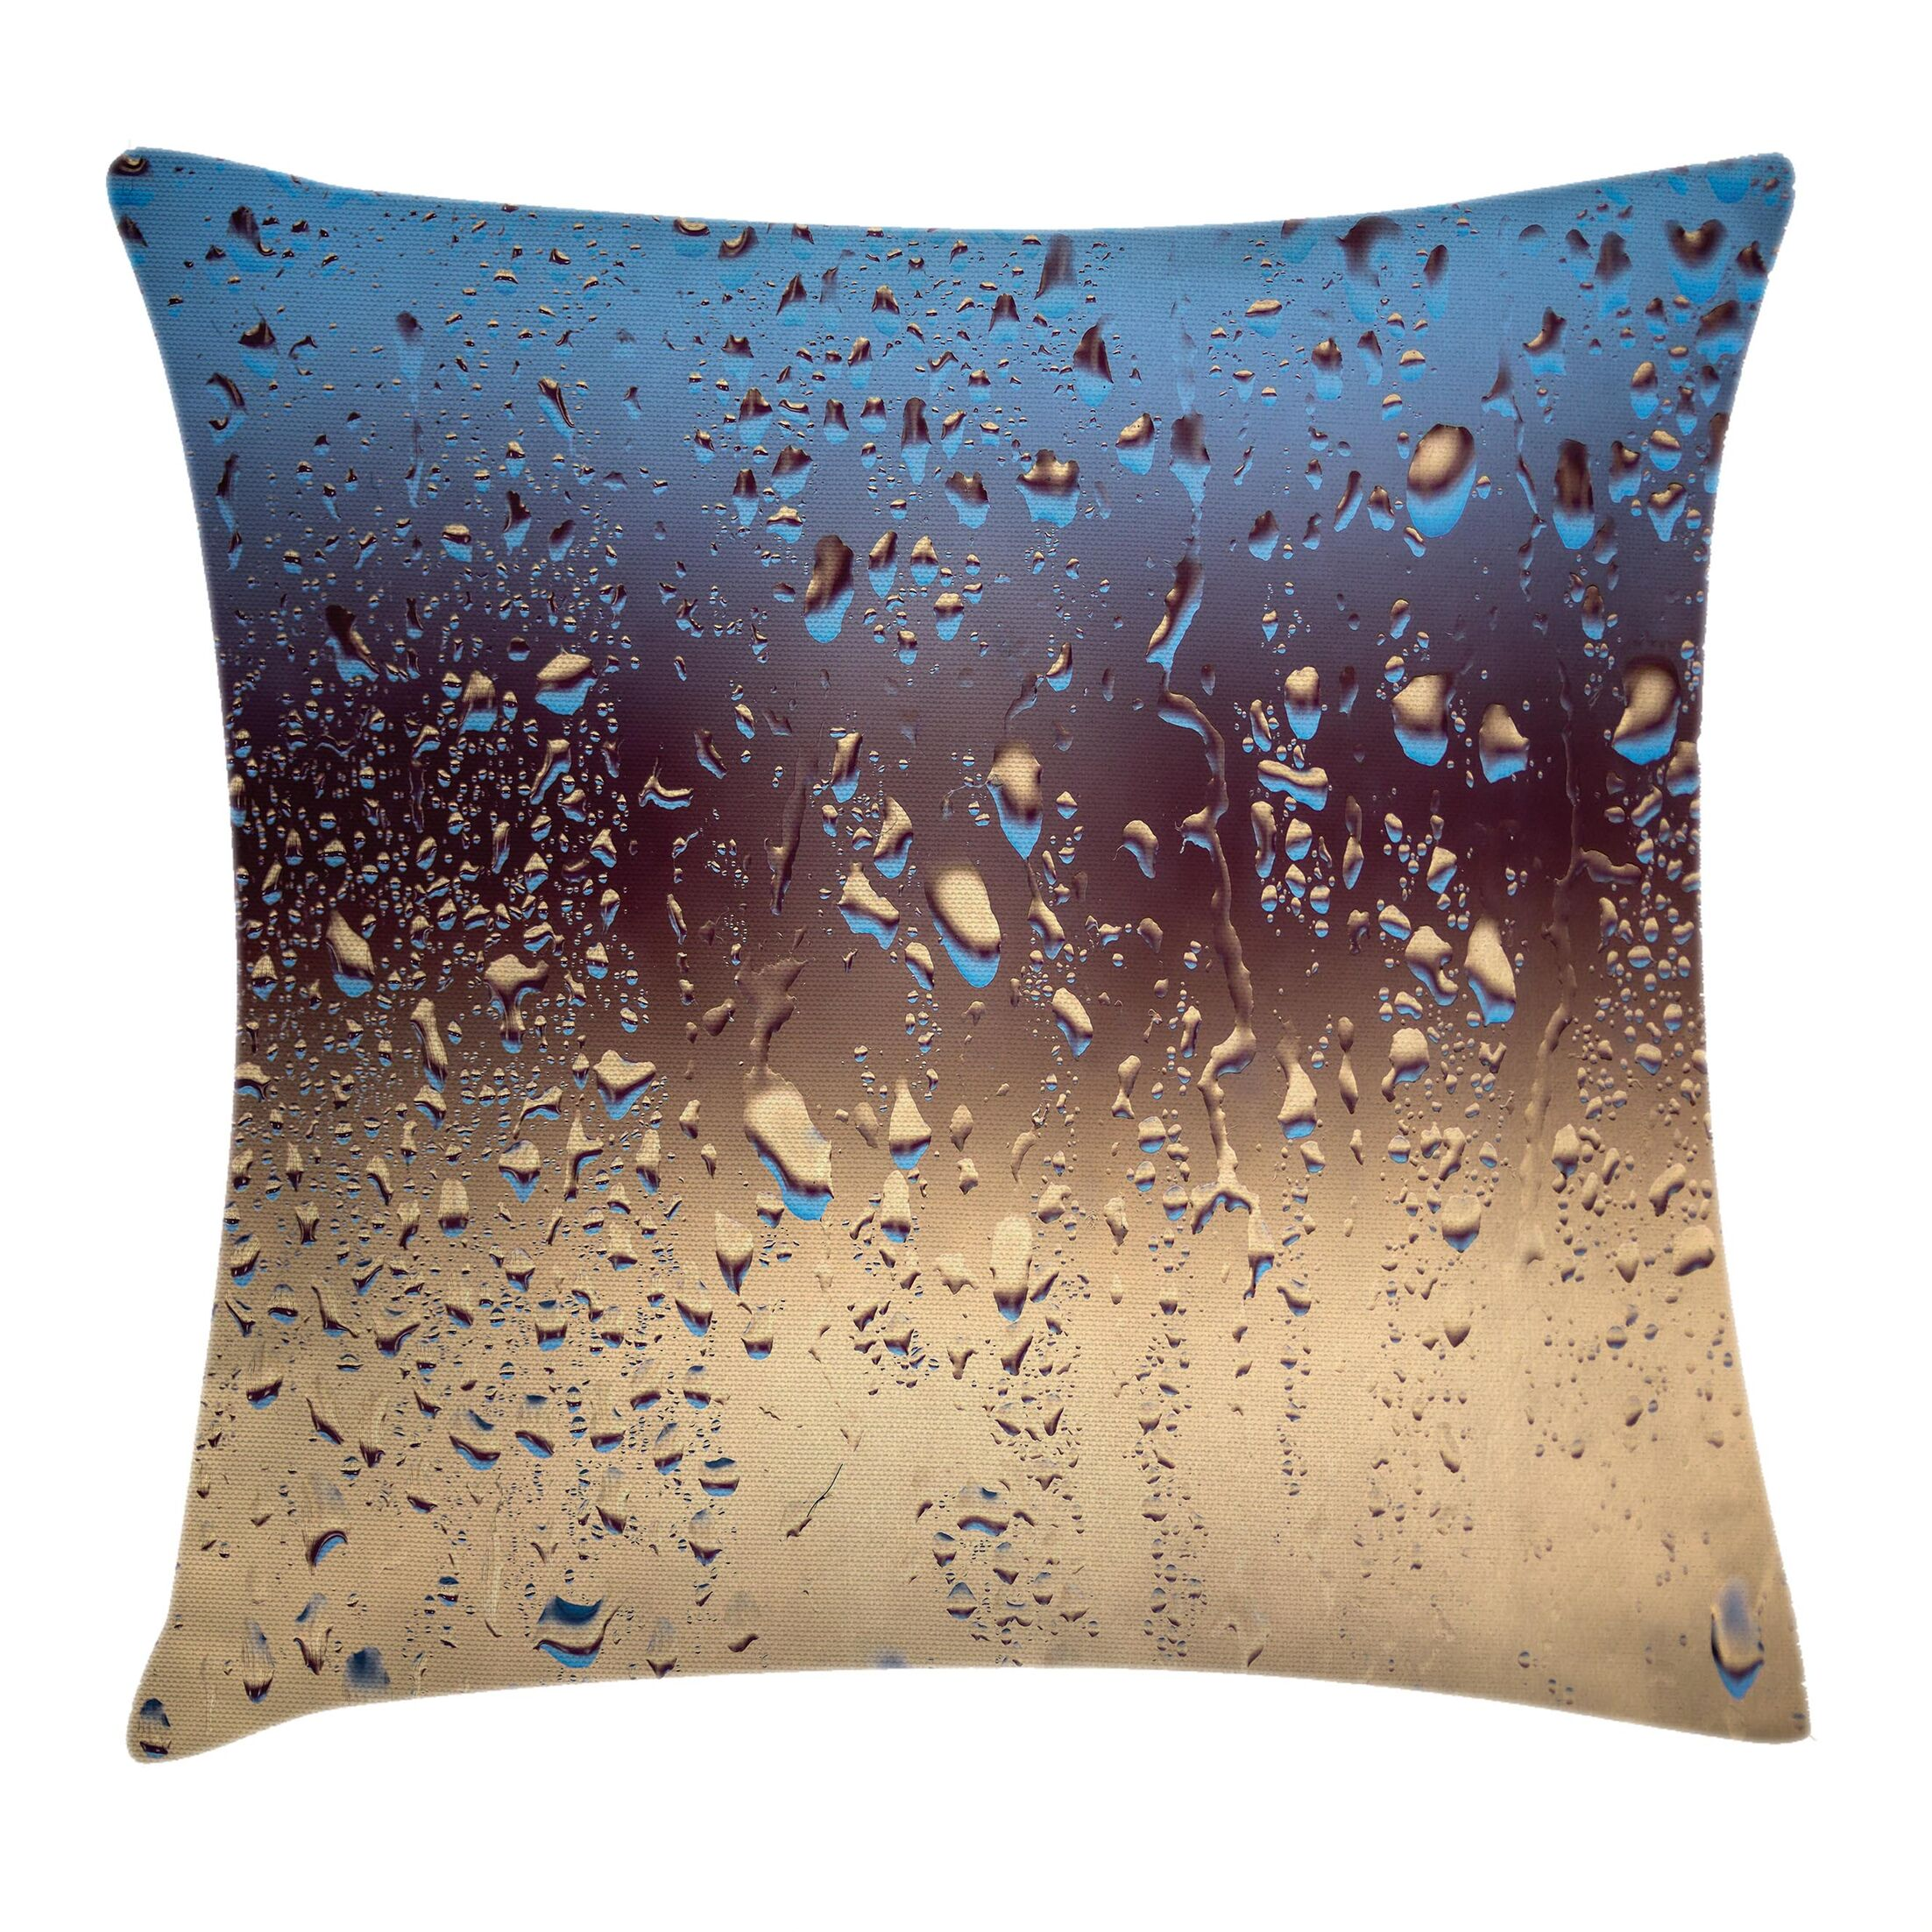 Rainy Day Window Effect Square Pillow Cover Size: 16